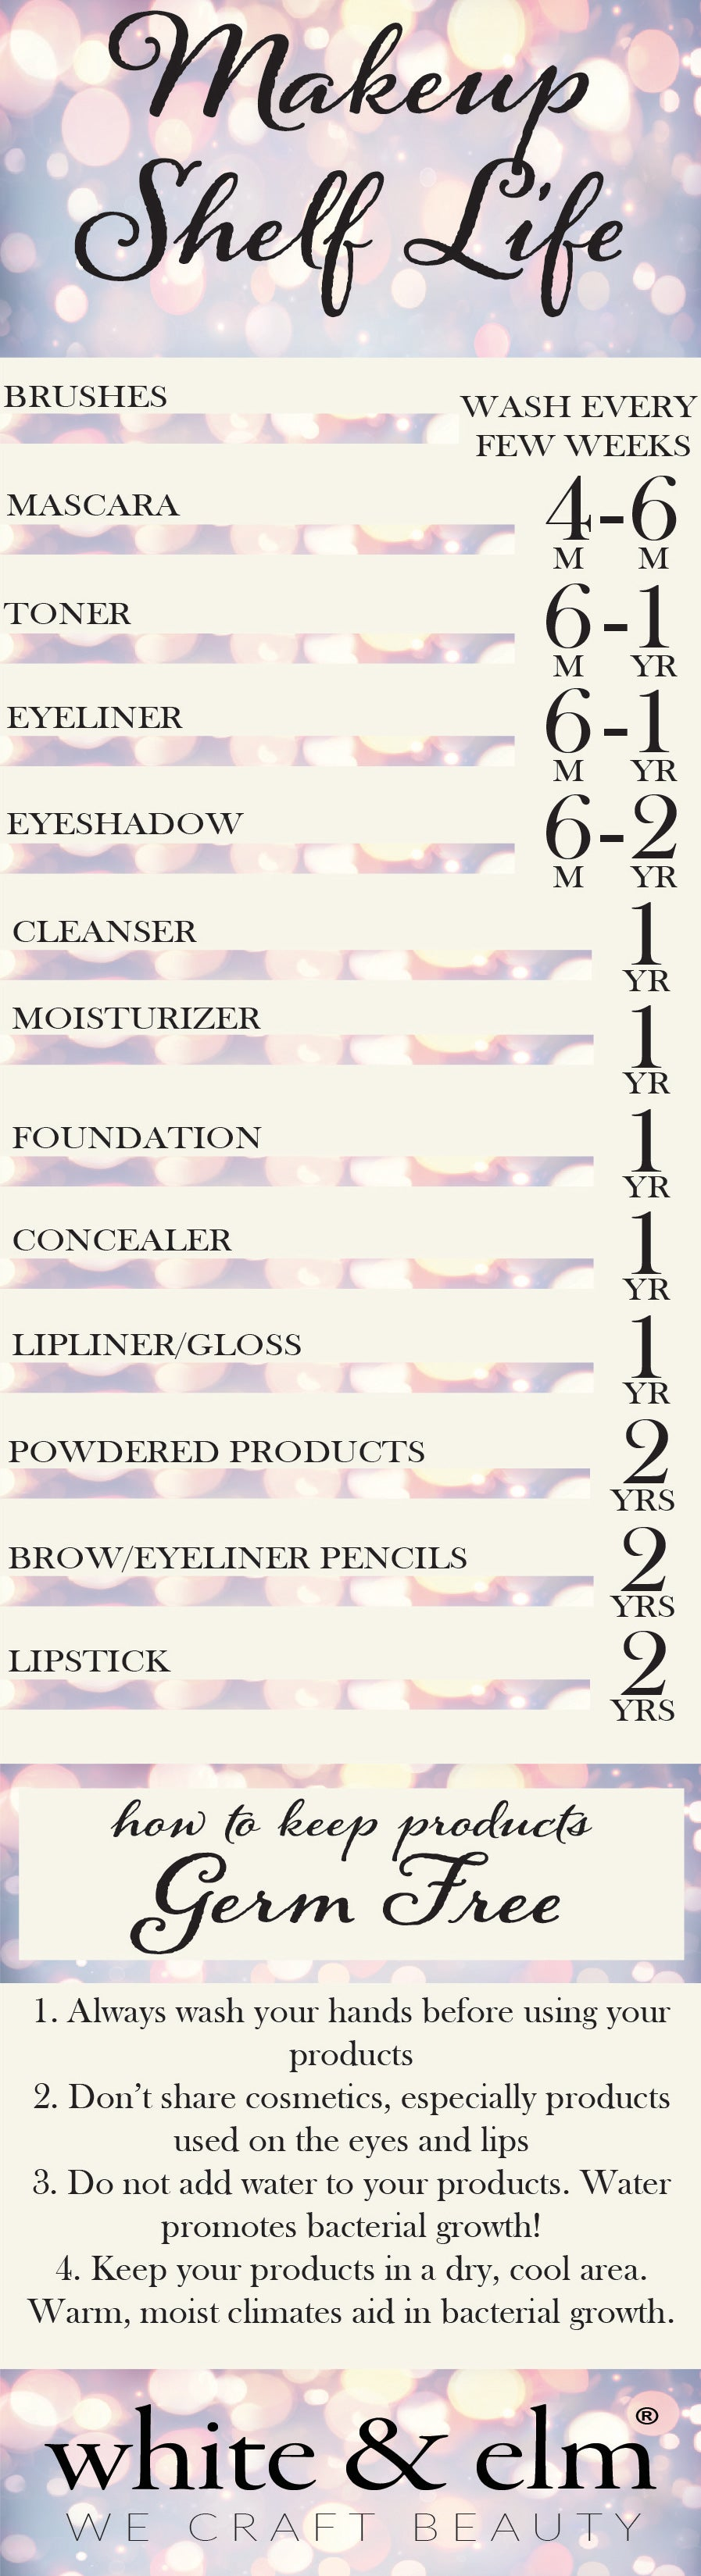 makeup expiration shelf life